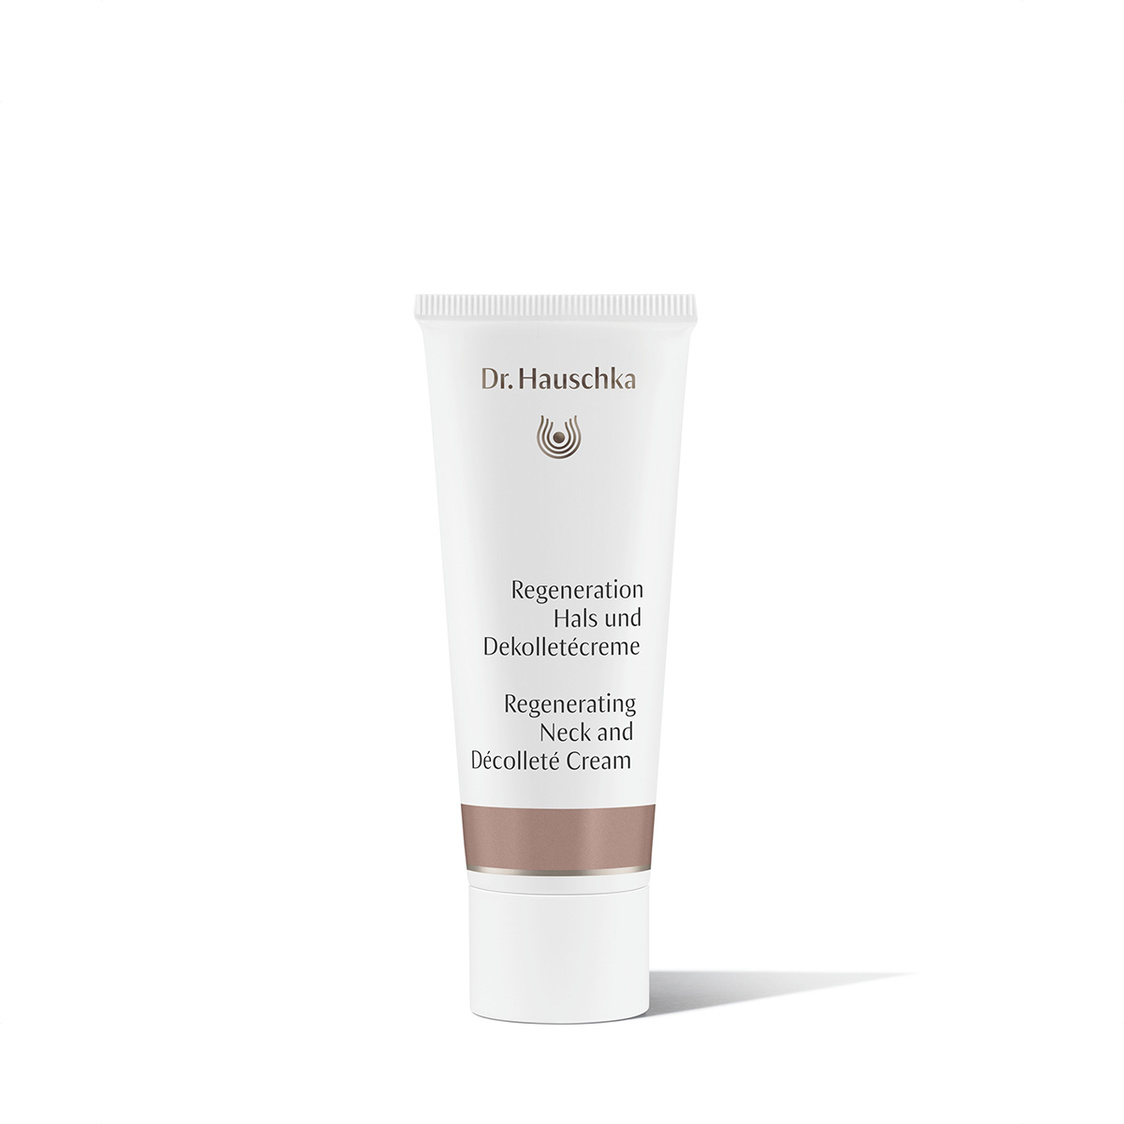 DrHauschka Regenerating Neck and Dcollet Cream 40ml